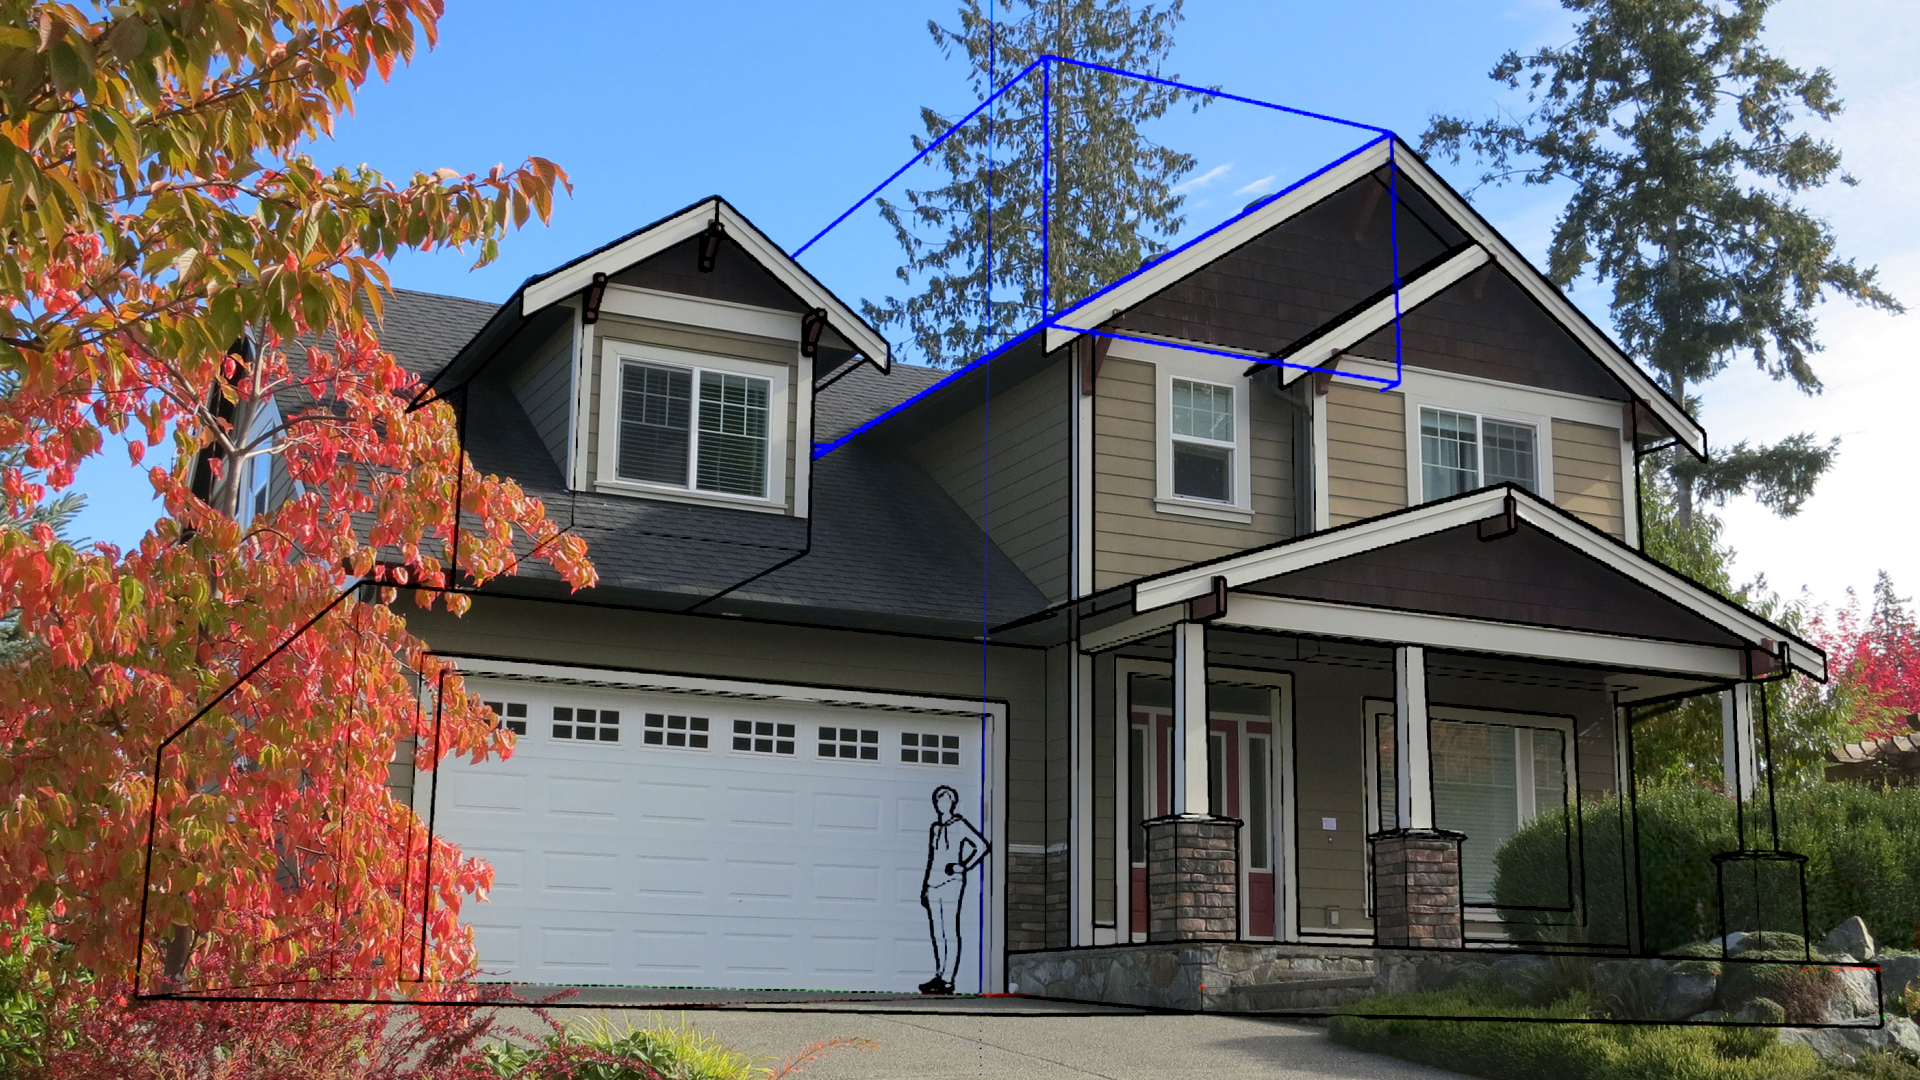 Sketchup Modeling Exteriors From Photos